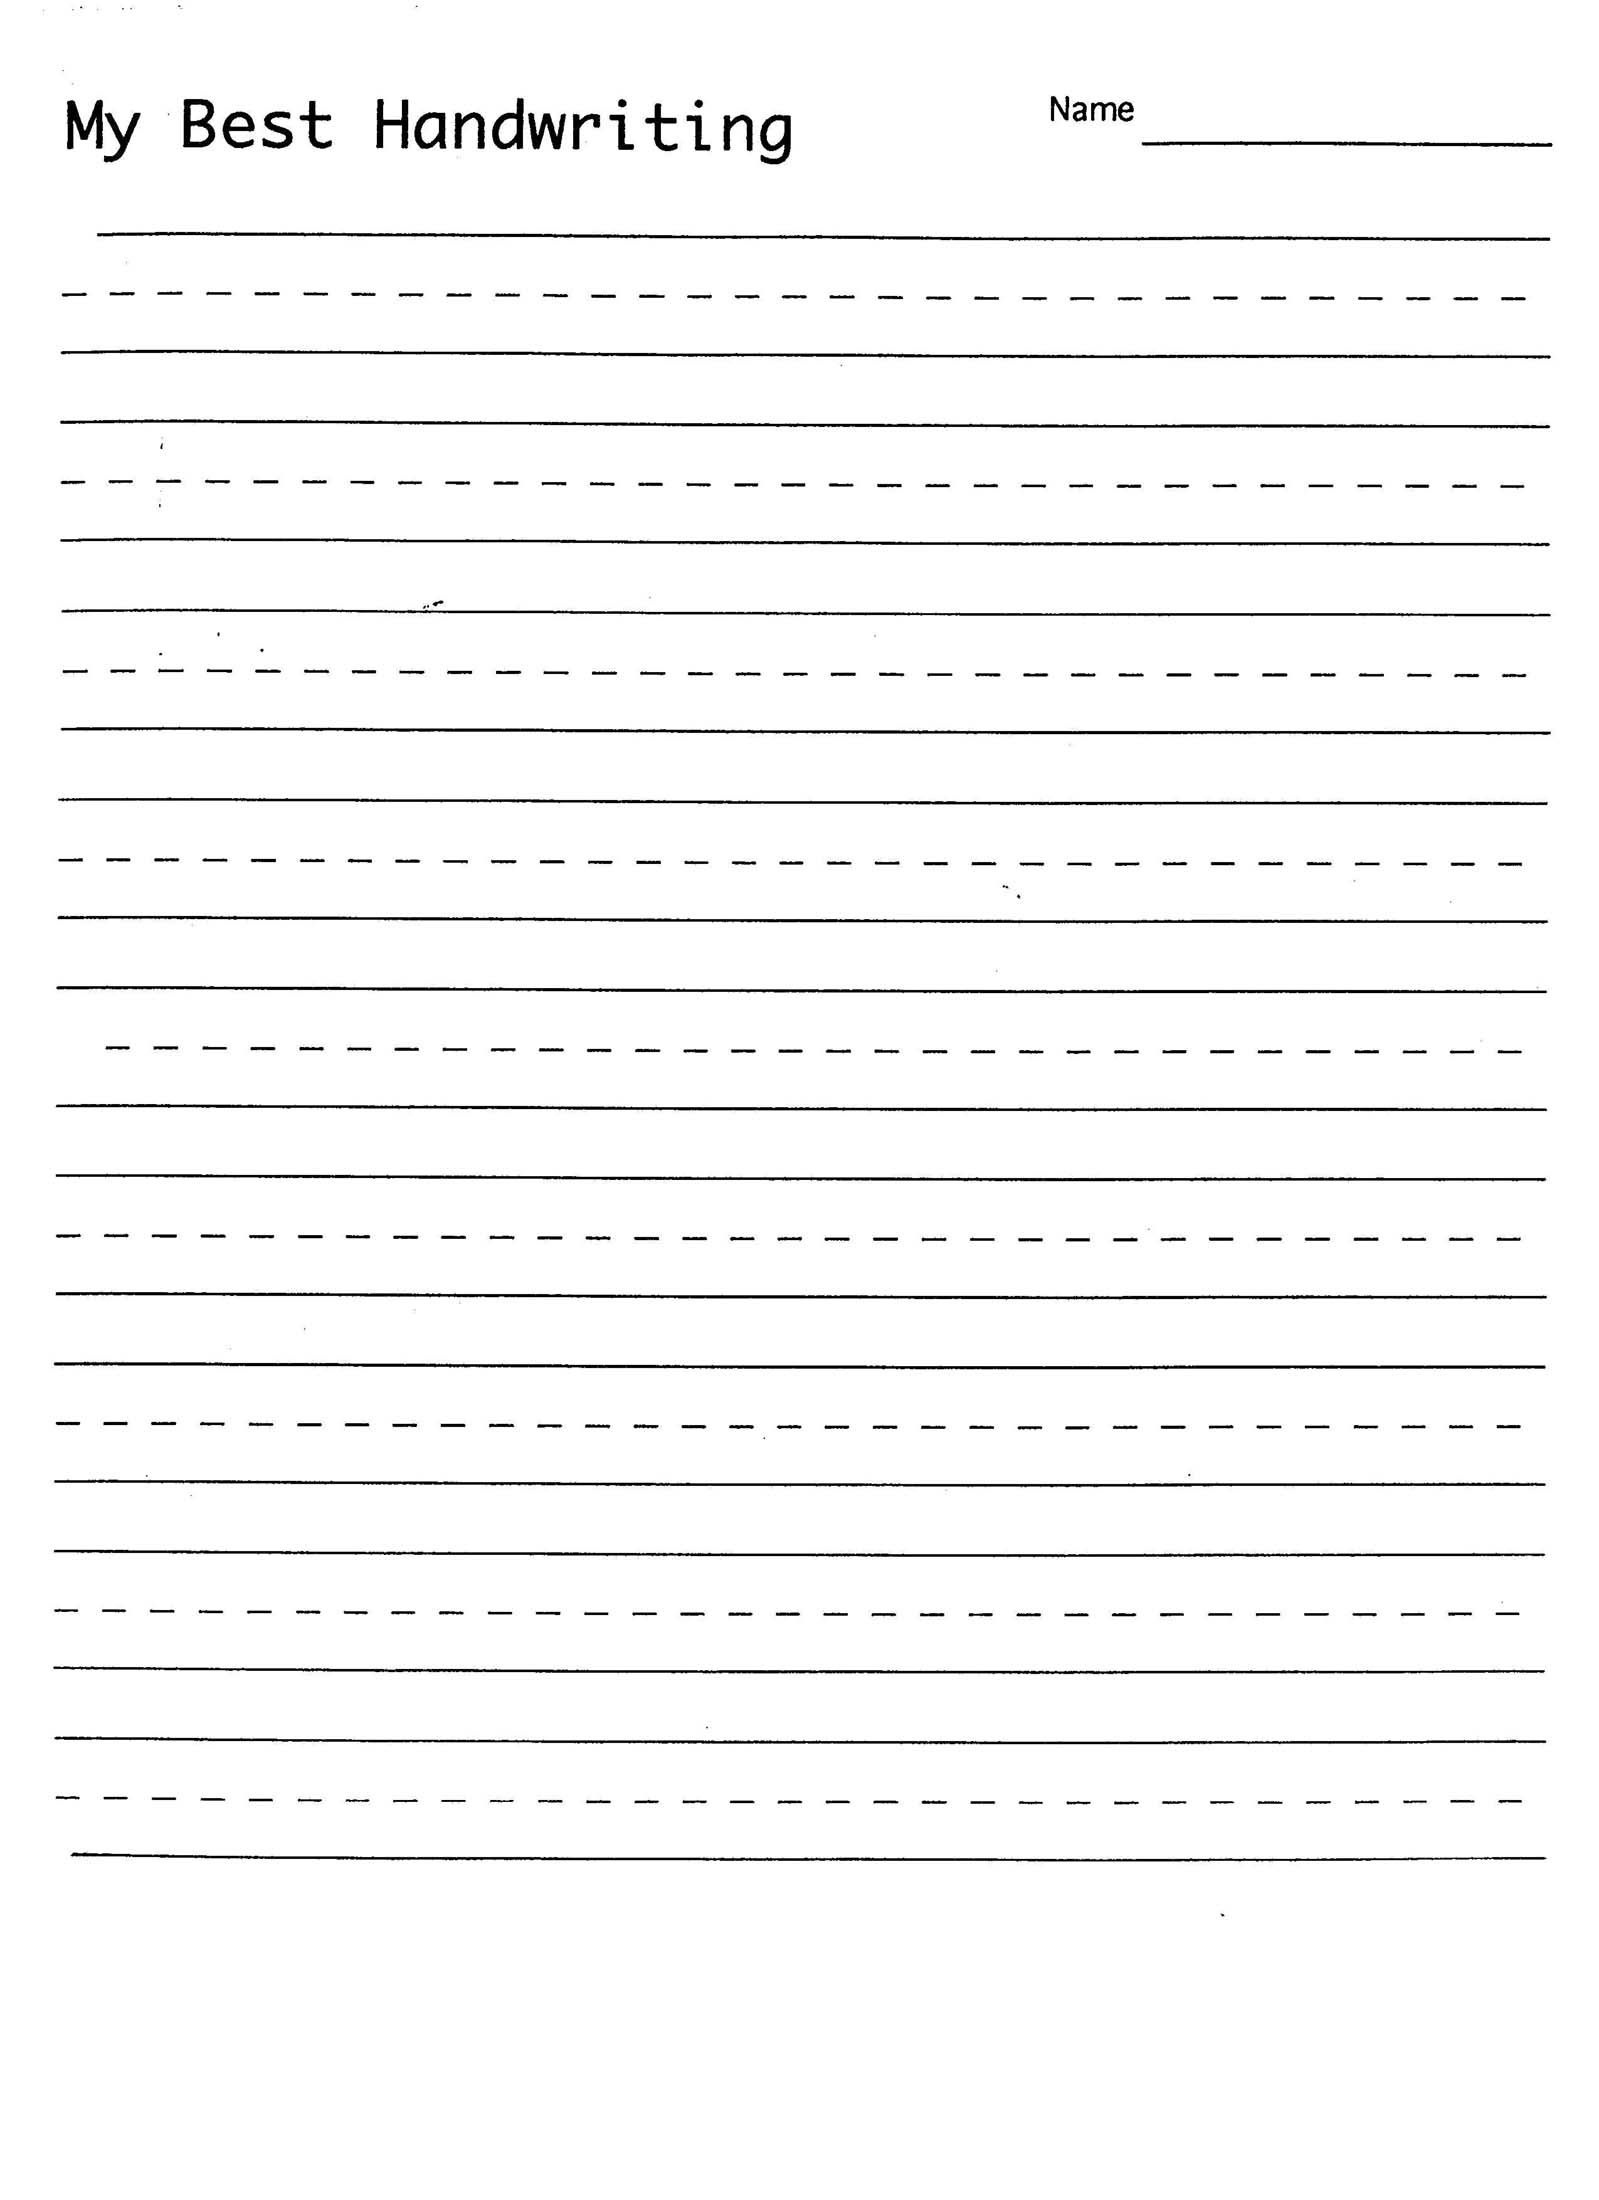 Handwriting Practice Sheet | 1St Grade Handwriting | Kindergarten - Free Printable Blank Handwriting Worksheets